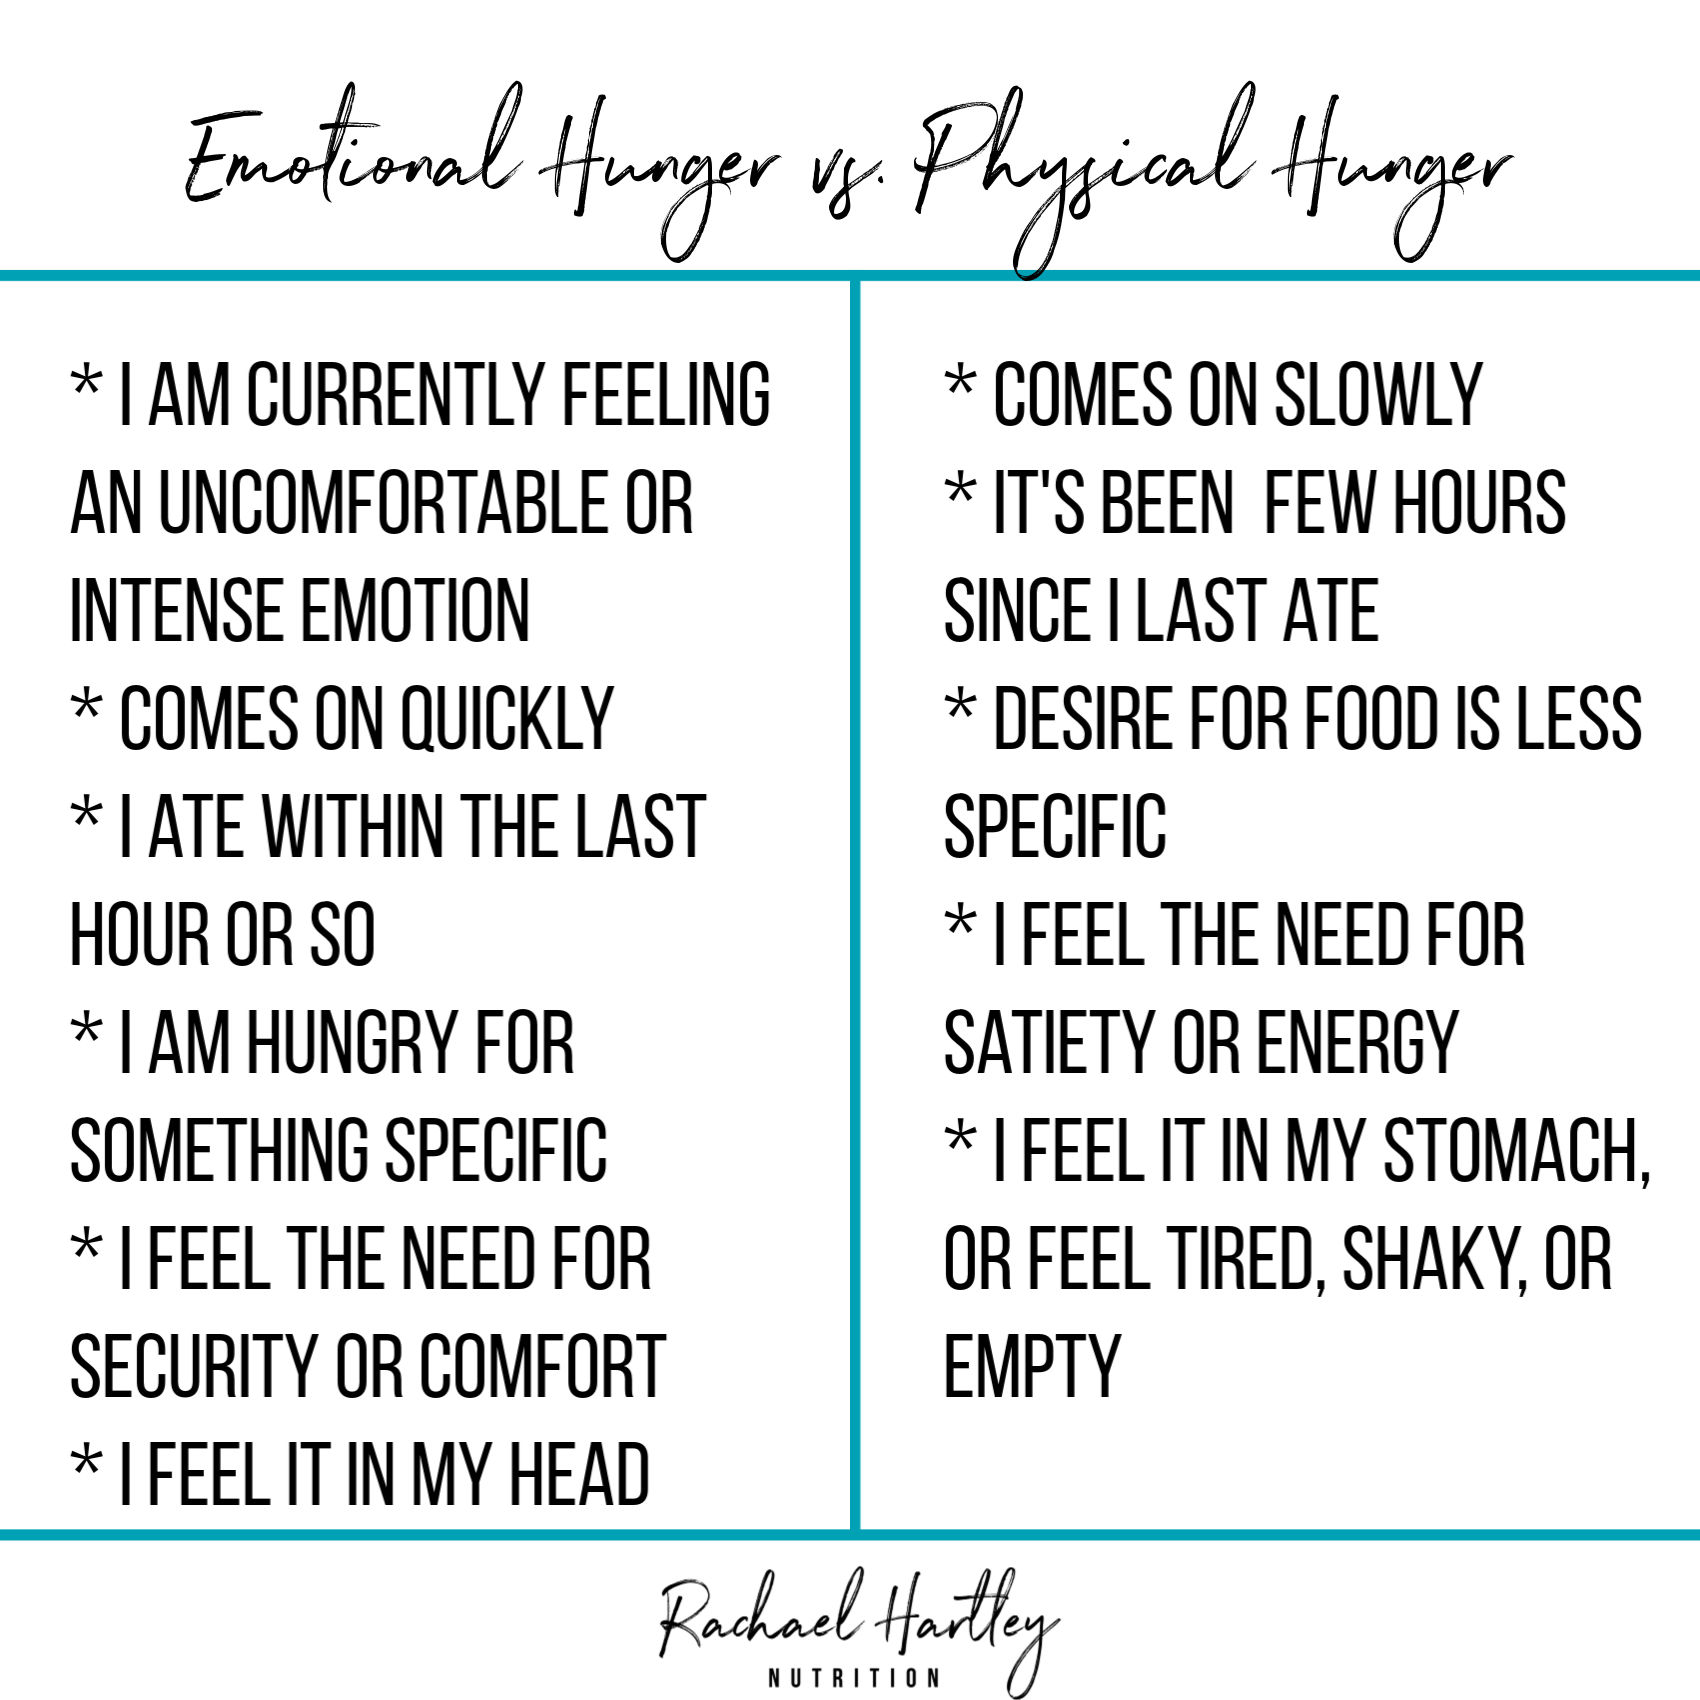 Four Types of Hunger in Intuitive Eating: physical vs emotional hunger